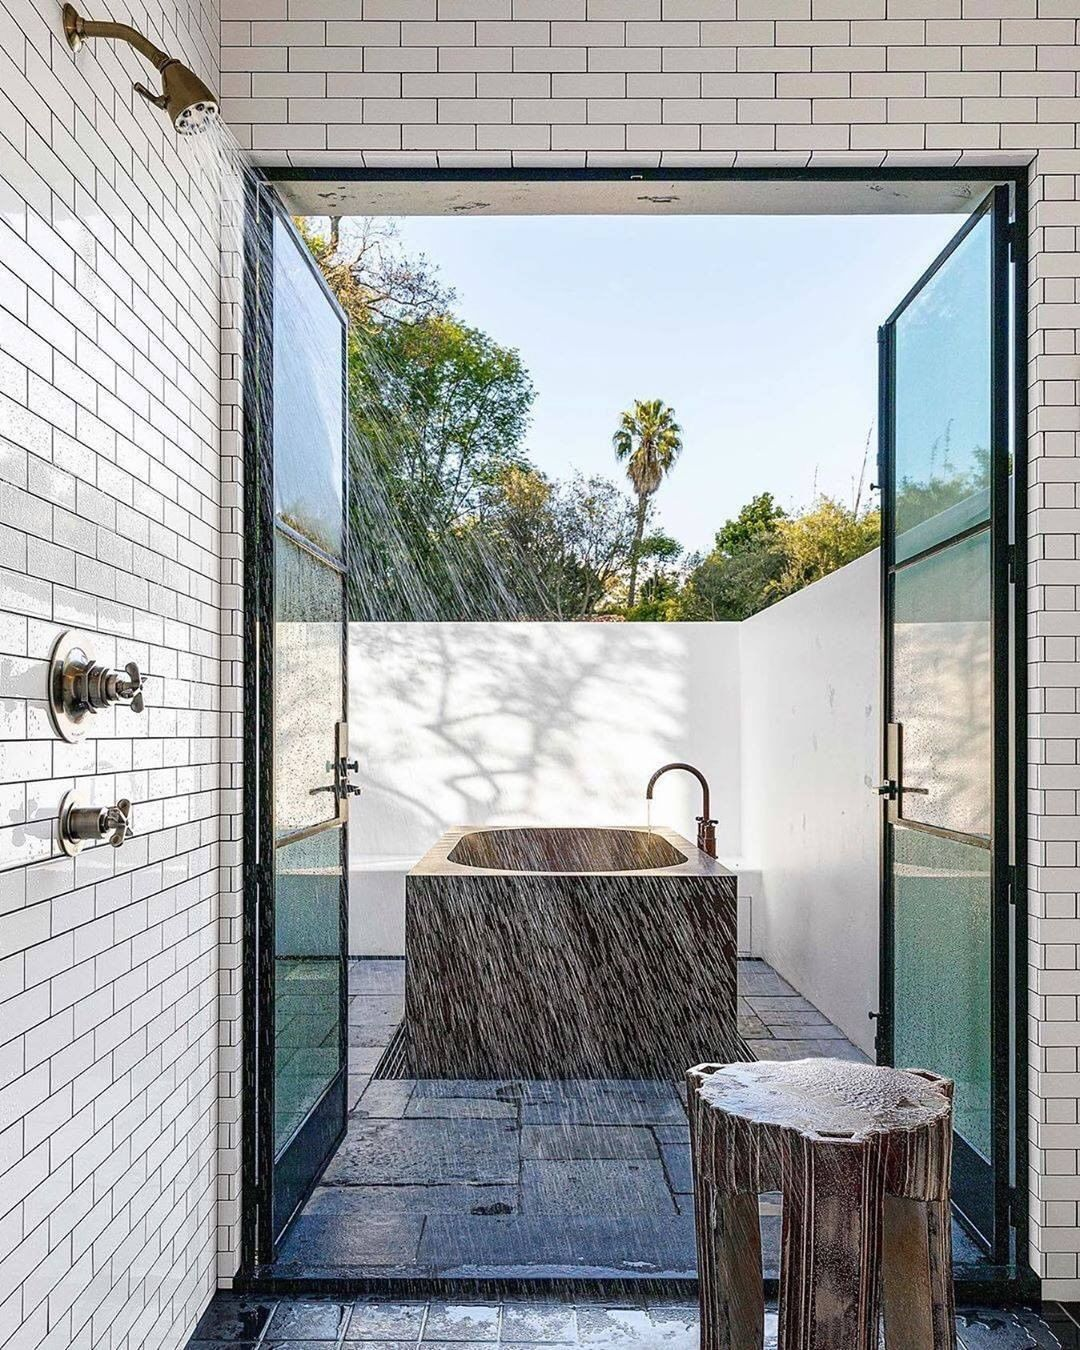 Bathroom With A View 7 Captivating Designs In 2020 Gorgeous Bathroom Designs La Houses Architectural Digest